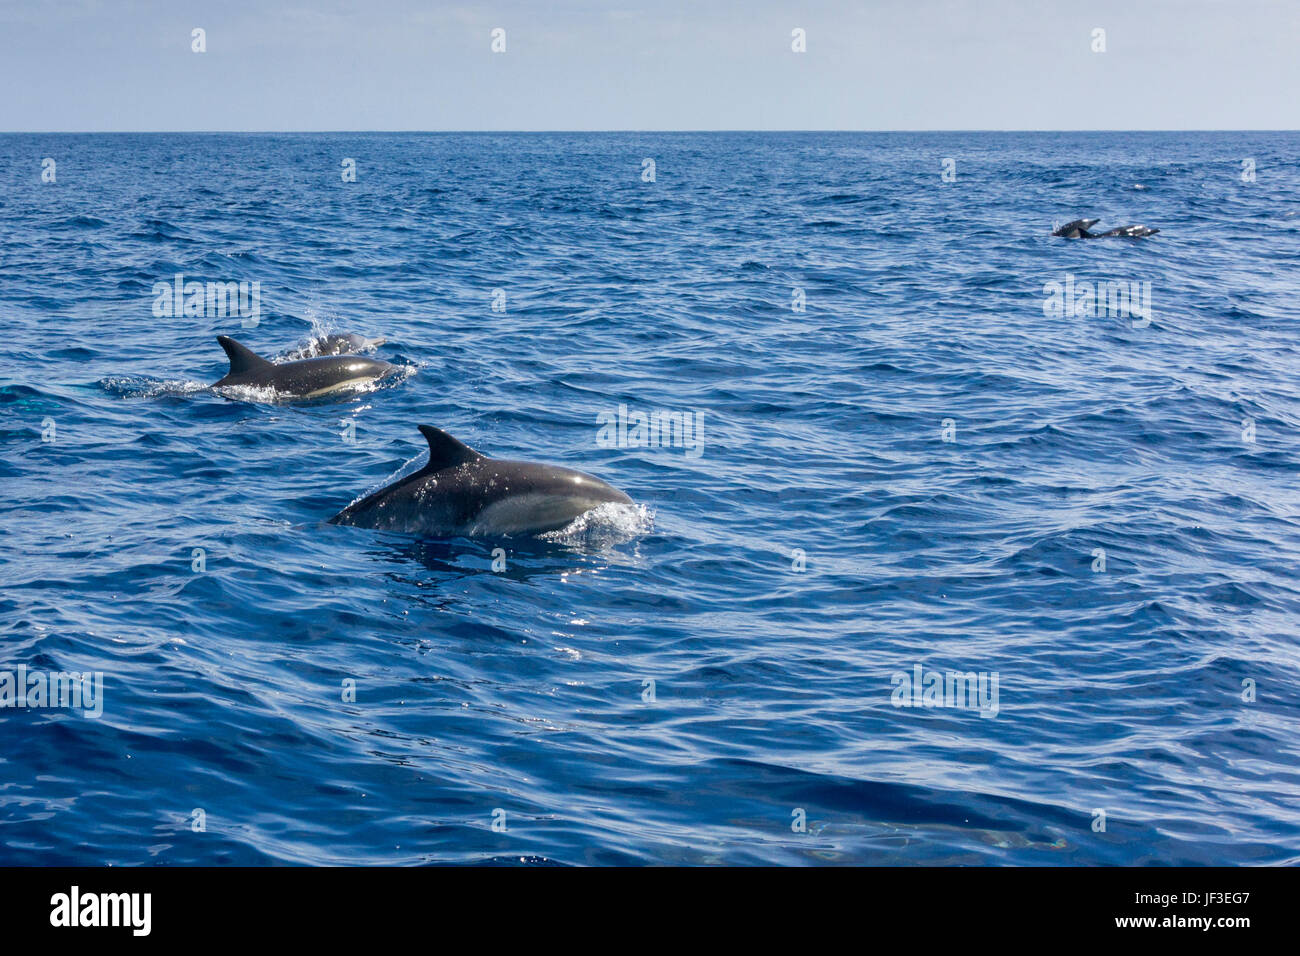 Common Bottlenose Dolphins in Pacific Ocean near Catalina Island. - Stock Image